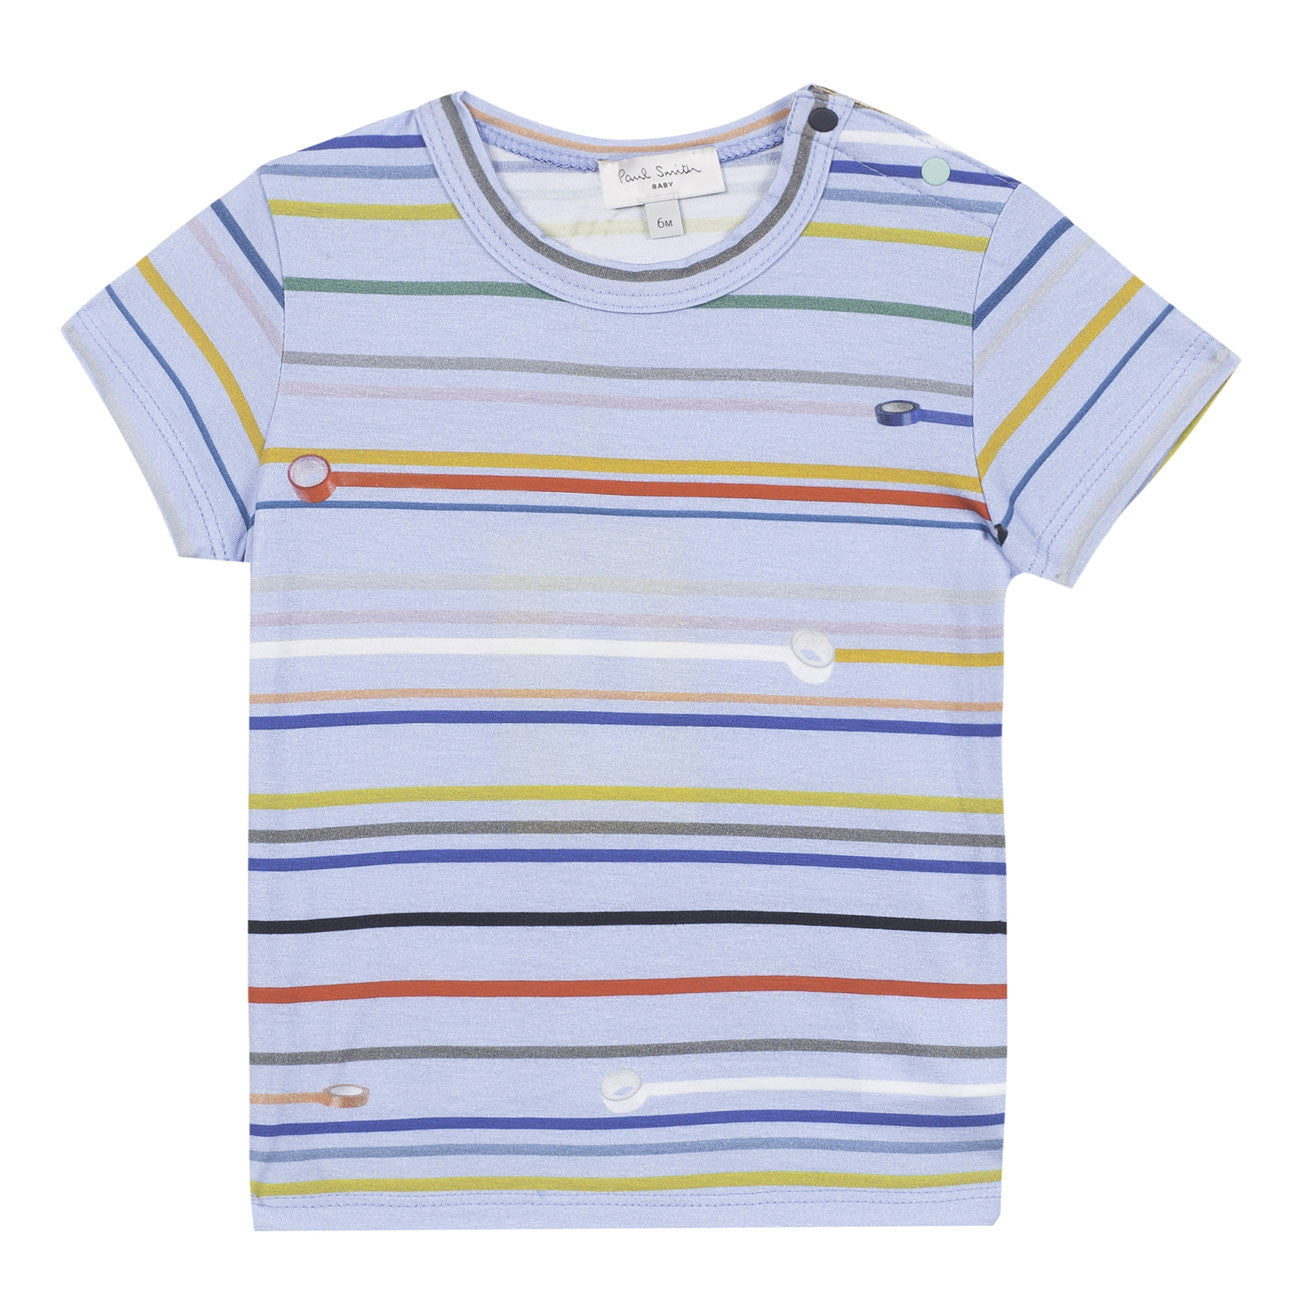 Paul Smith Baby Blue Modern St - Ladida